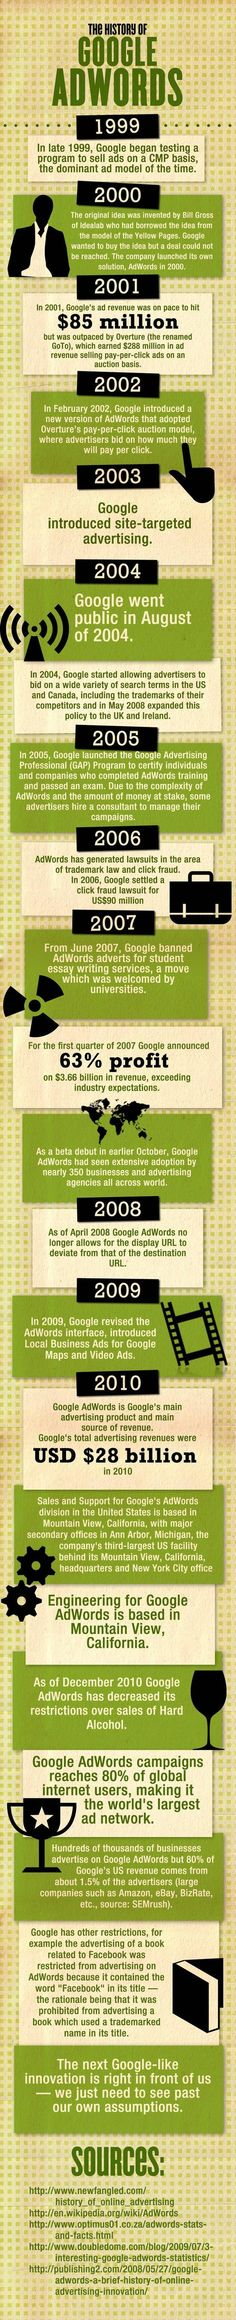 The history of Google Adwords #infographic #PPC #SEO #SEOservices #SEOSailor